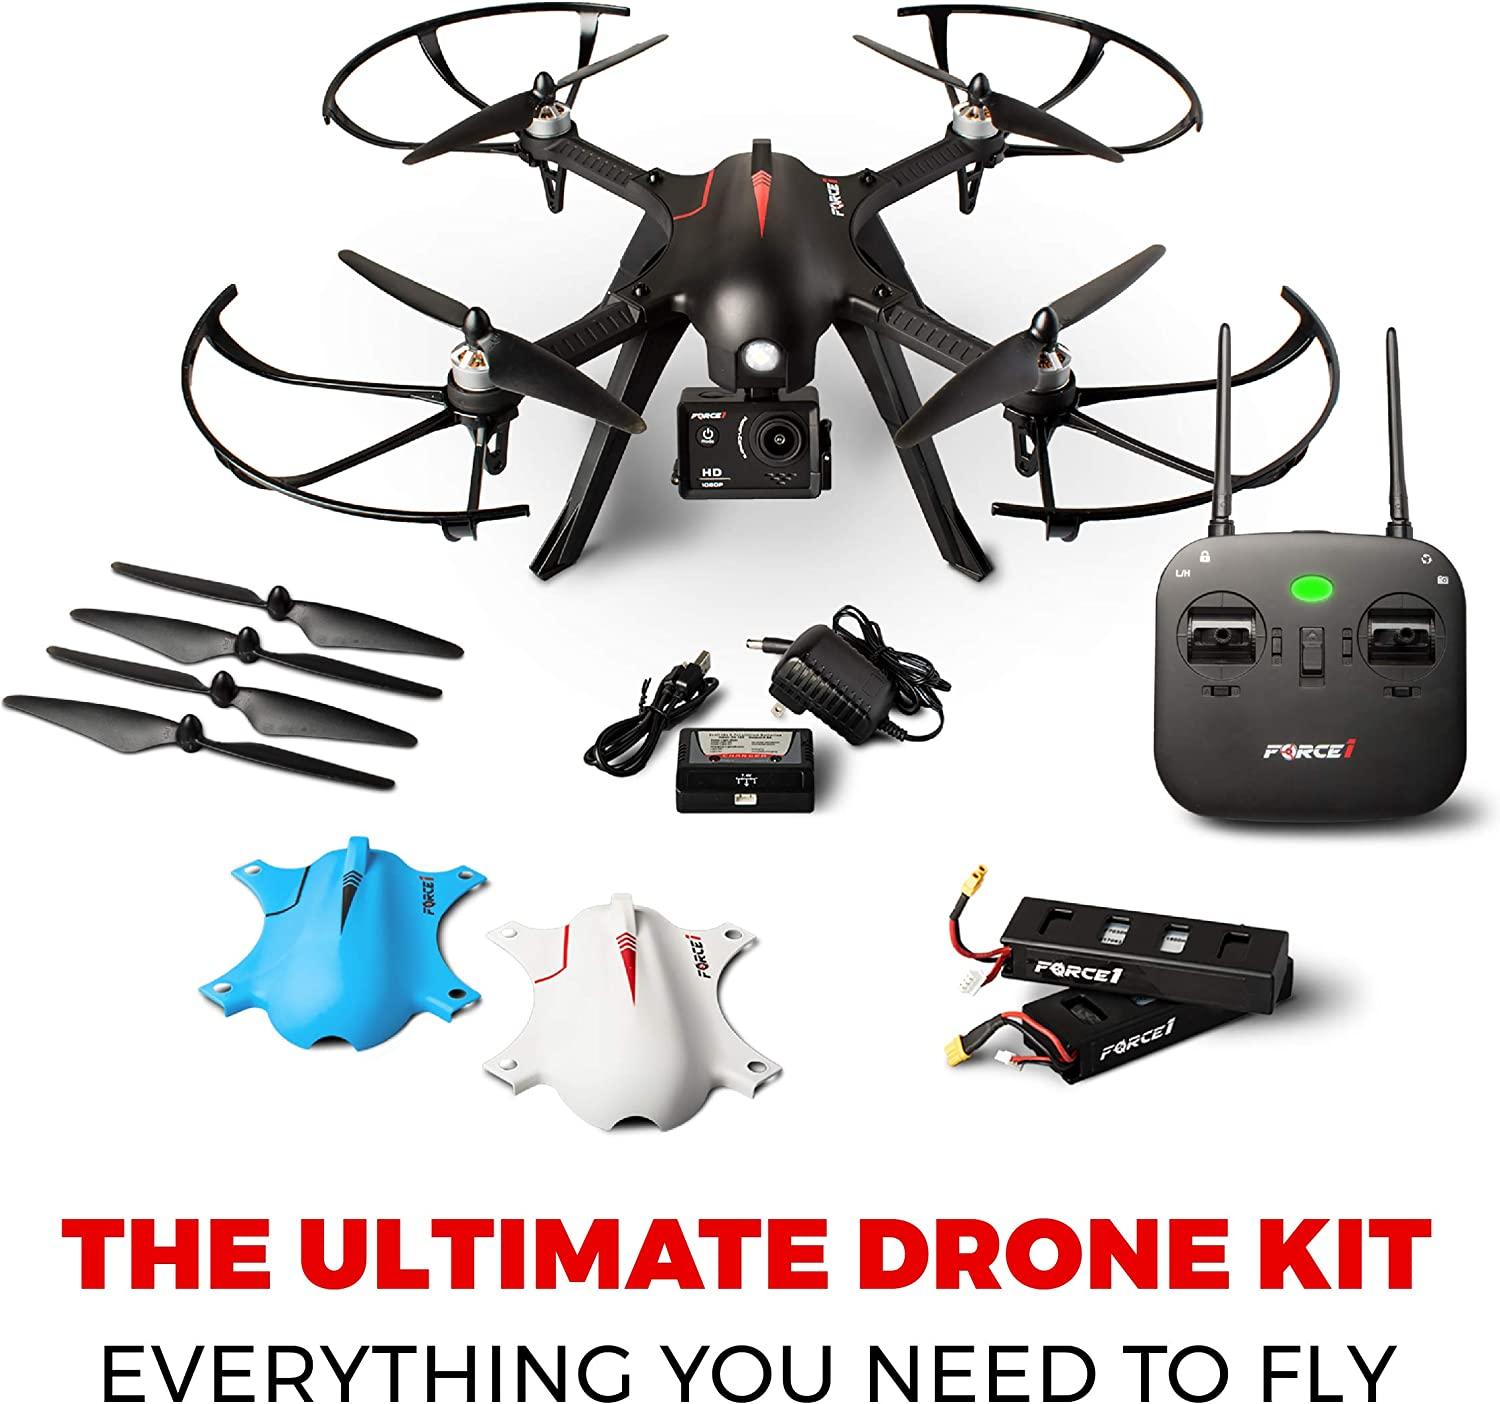 Force1 F100GP is at # 4 for best drones without camera.